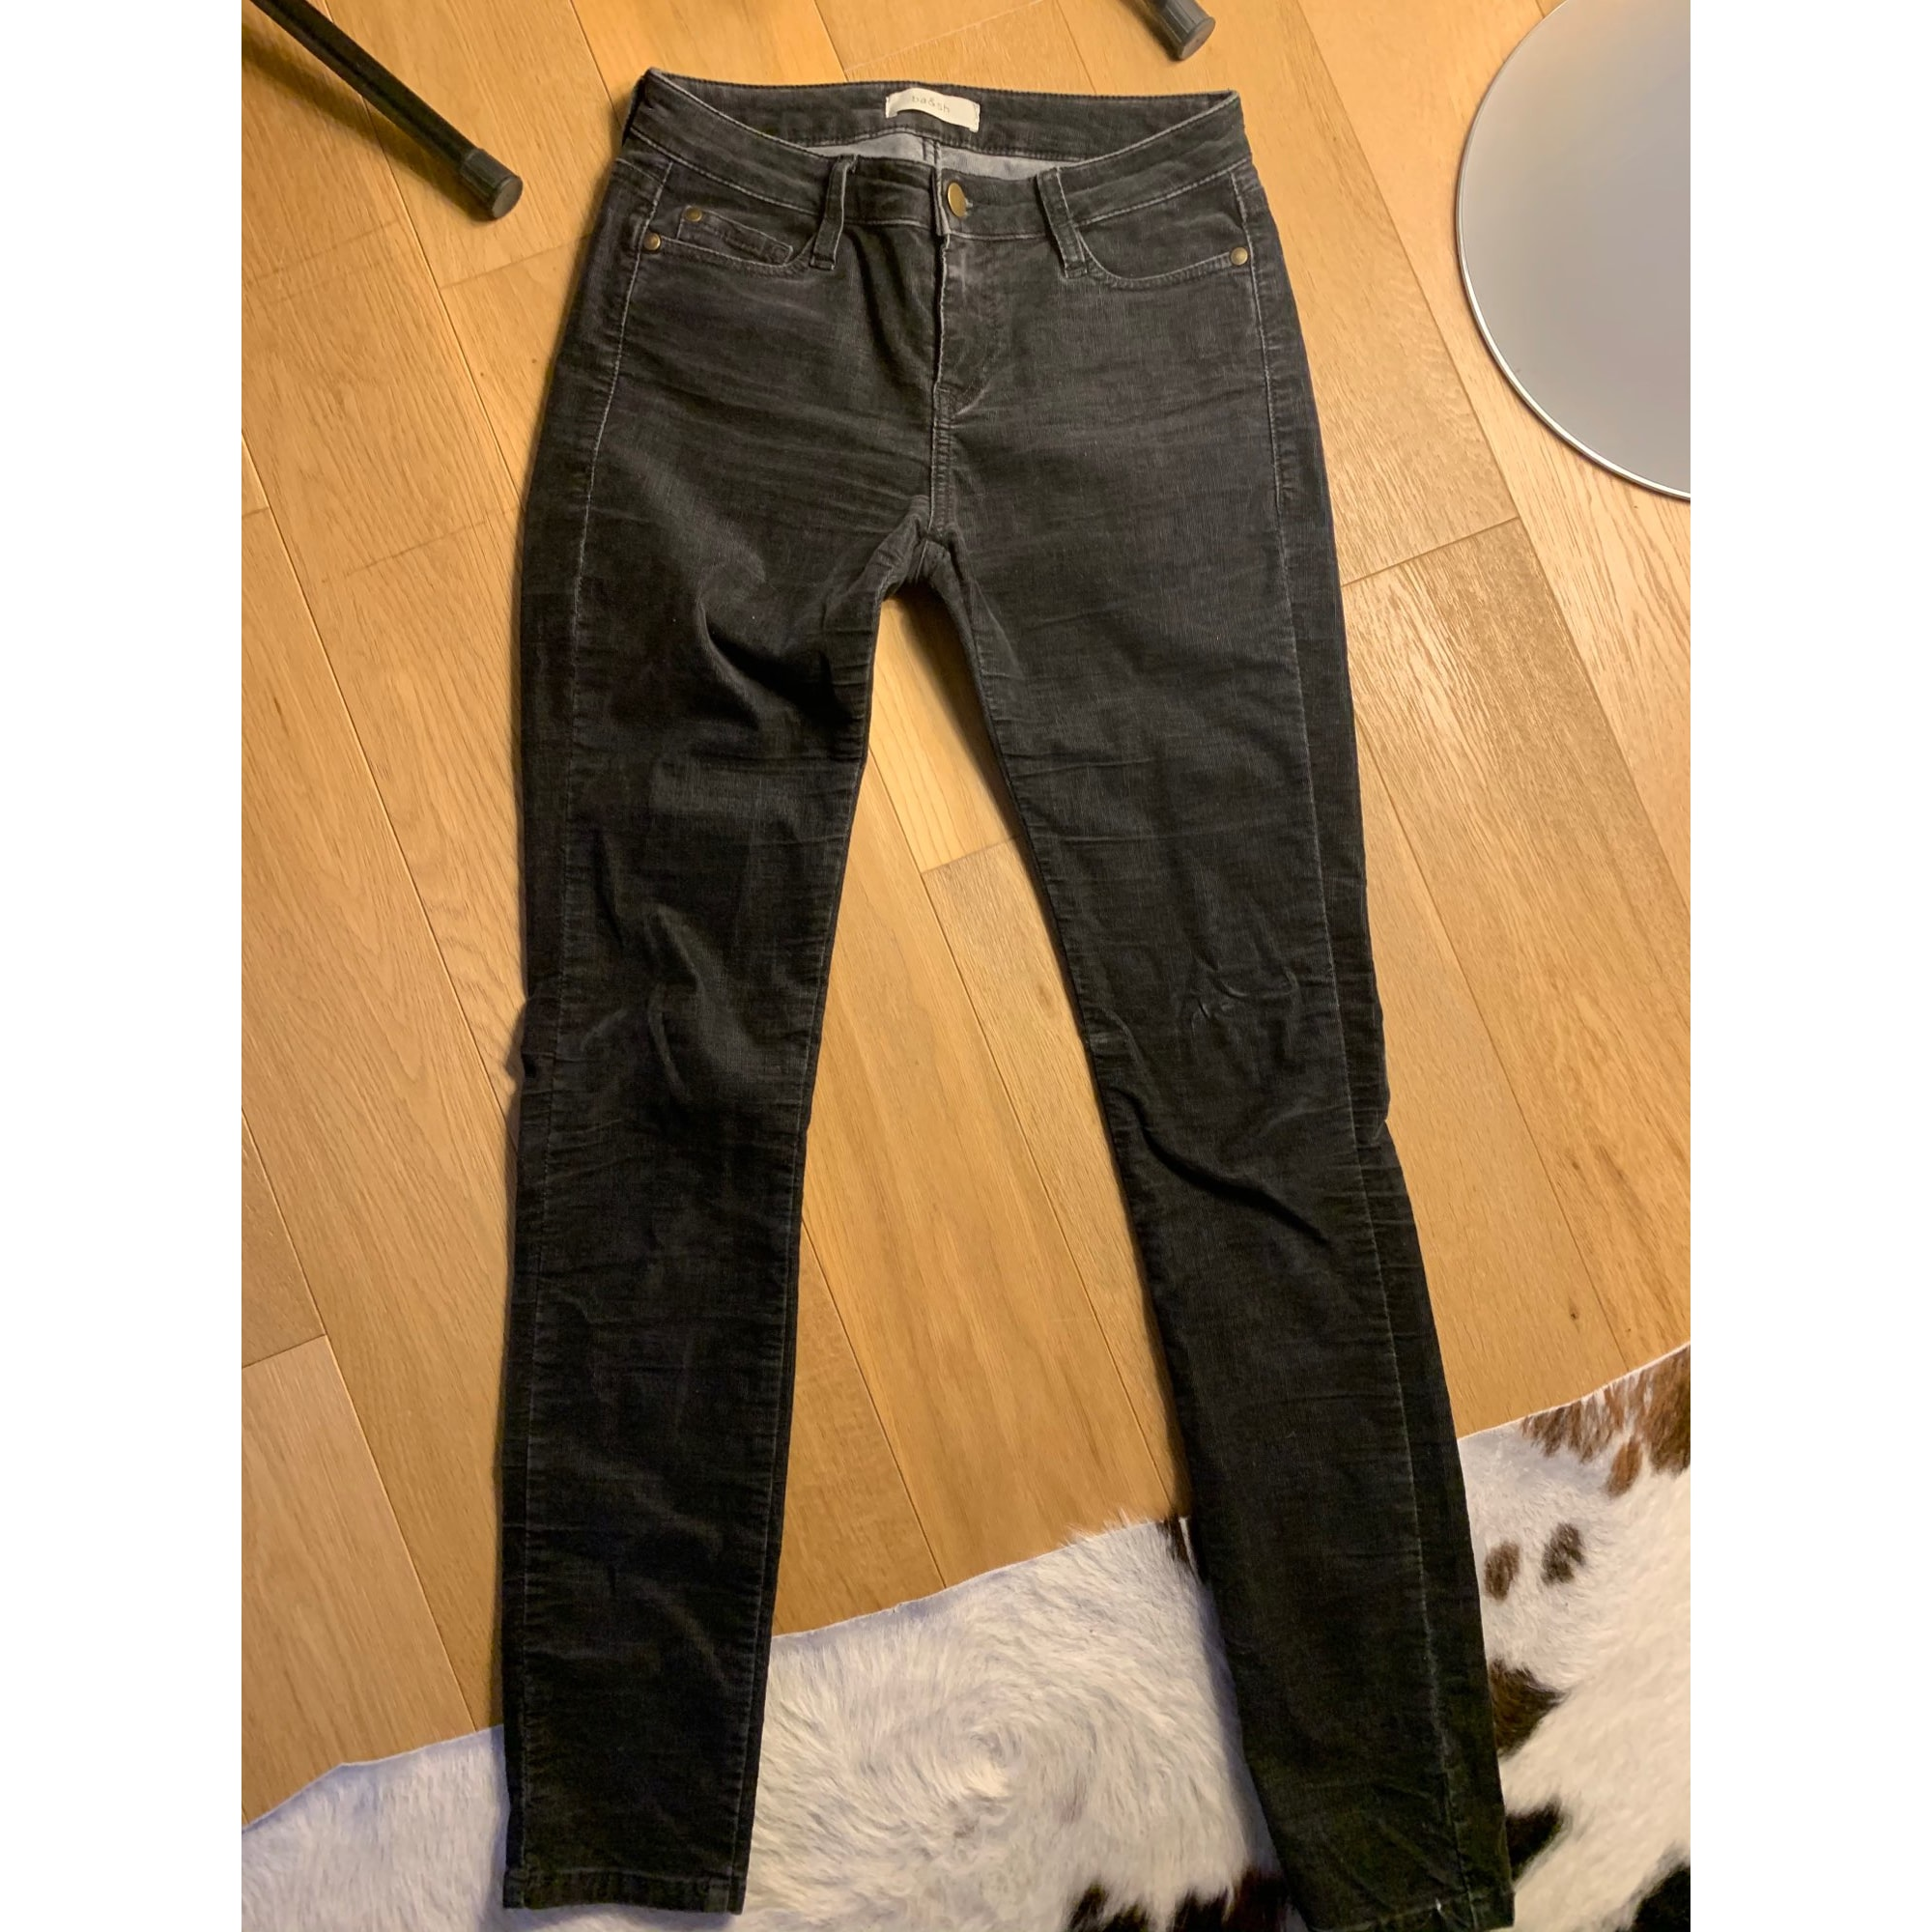 Jeans slim BA&SH Gris, anthracite